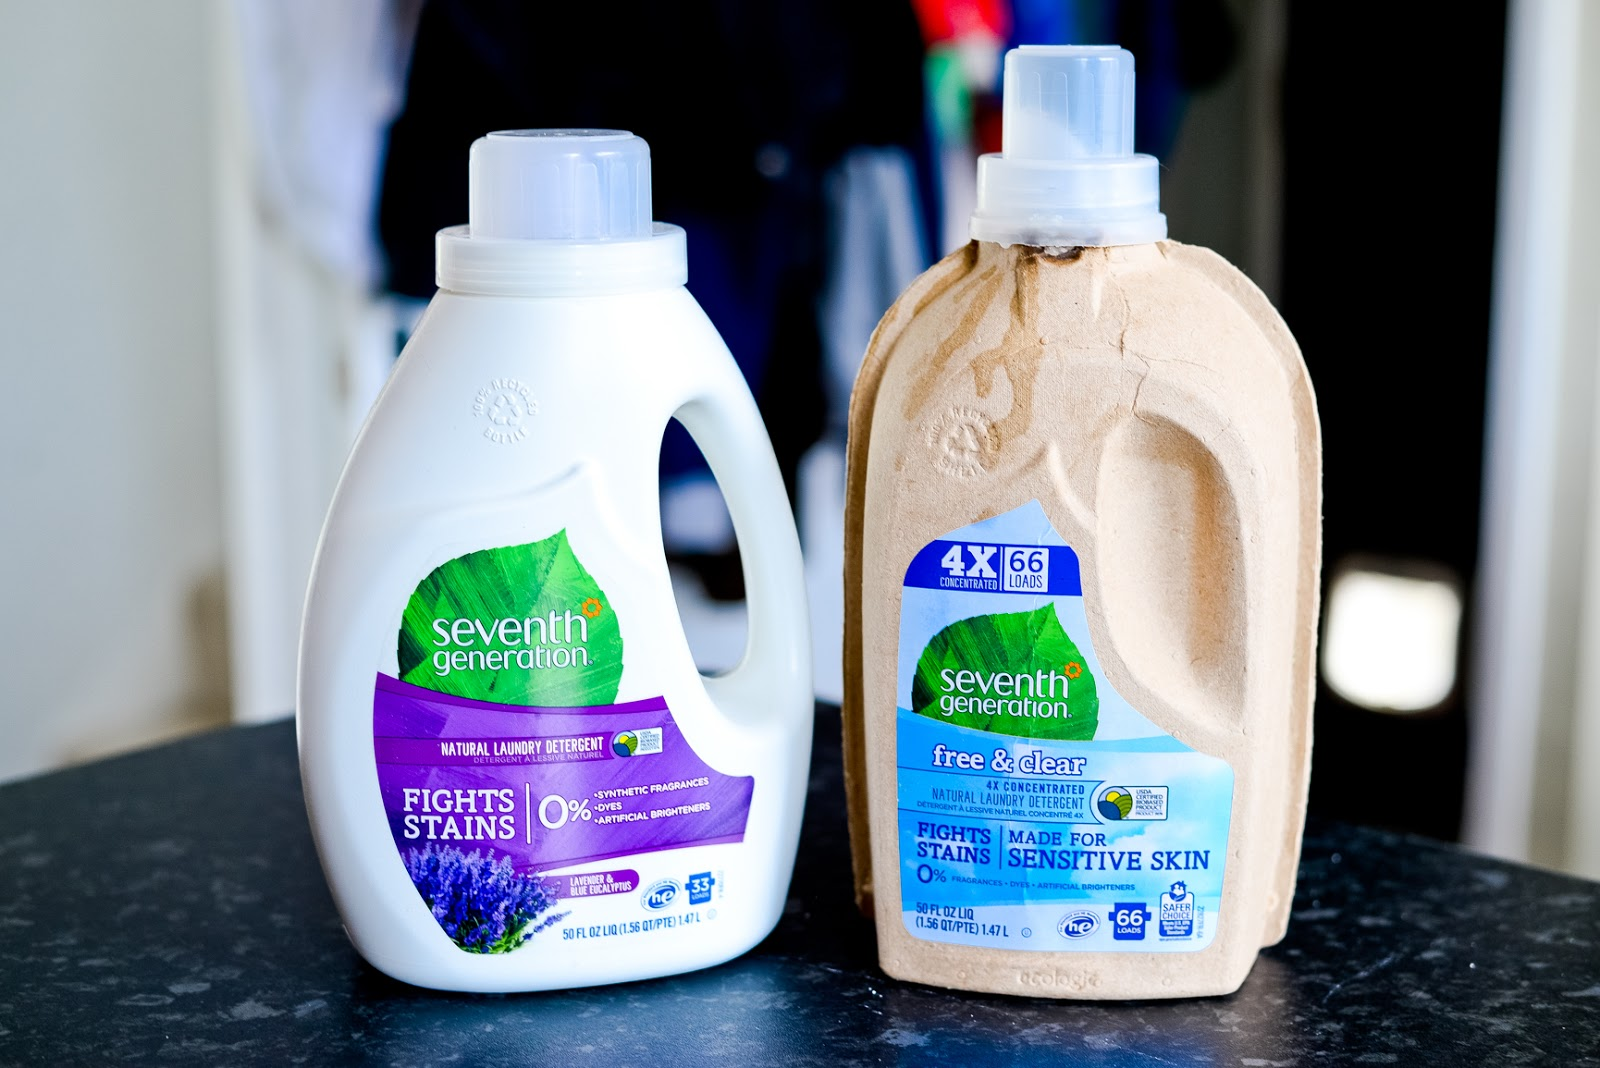 seventh generation, plant-based cleaning products, natural cleaning products, cruelty free cleaning products